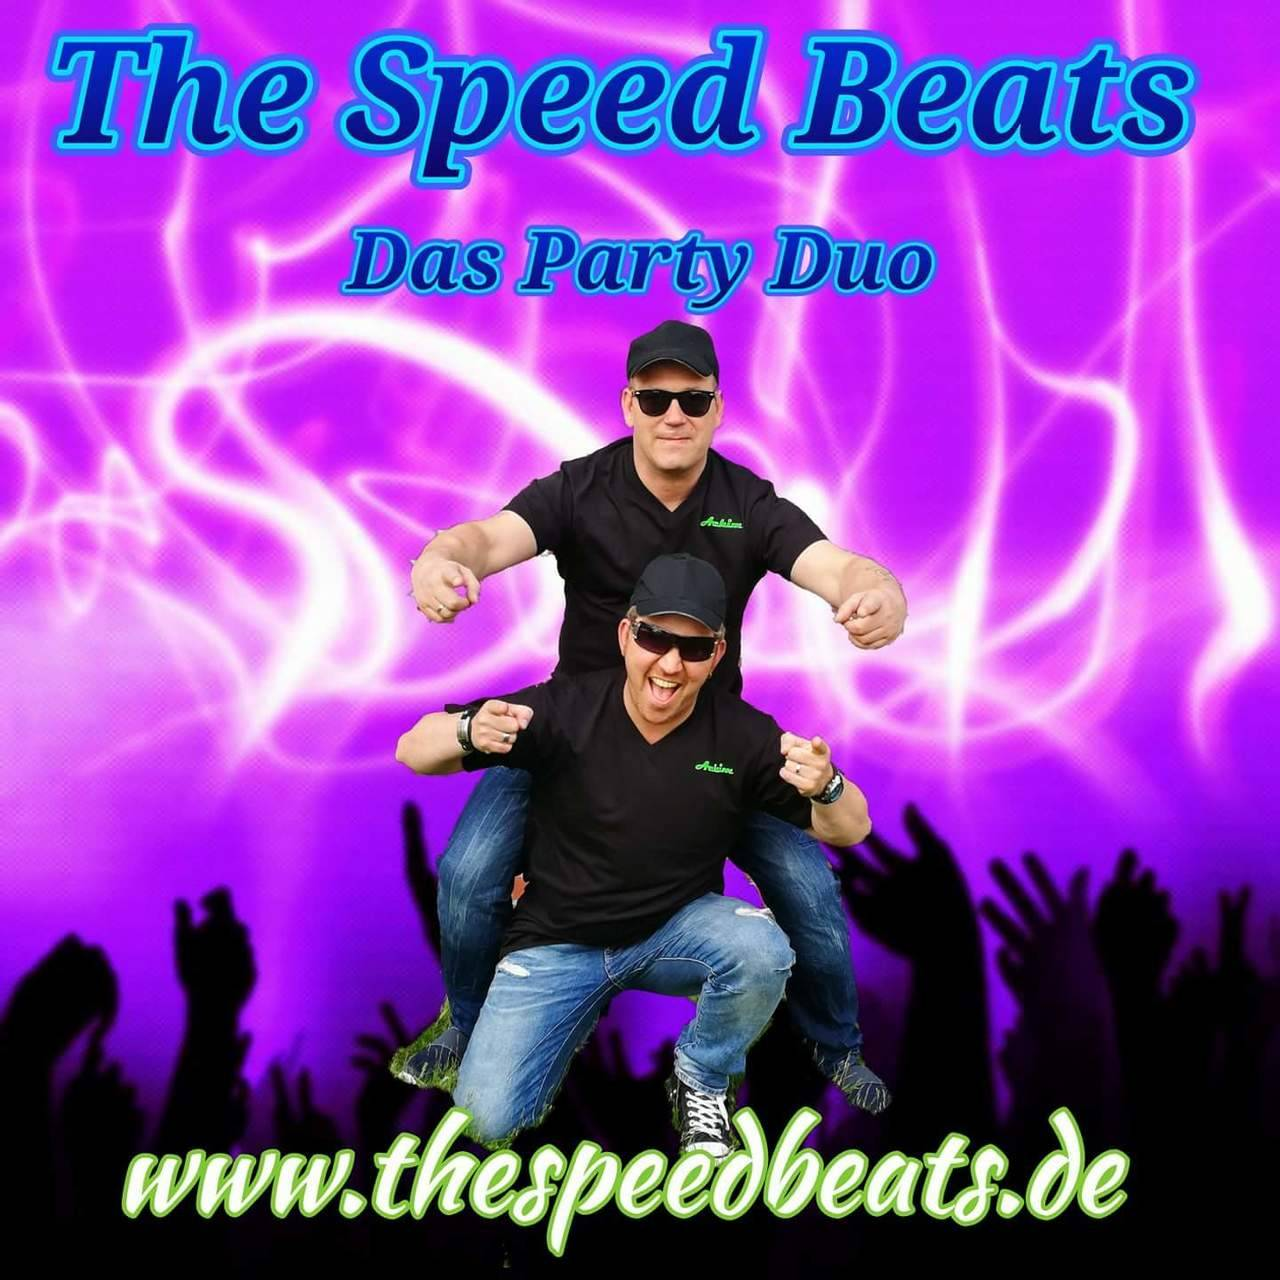 The Speed Beats das Party Duo